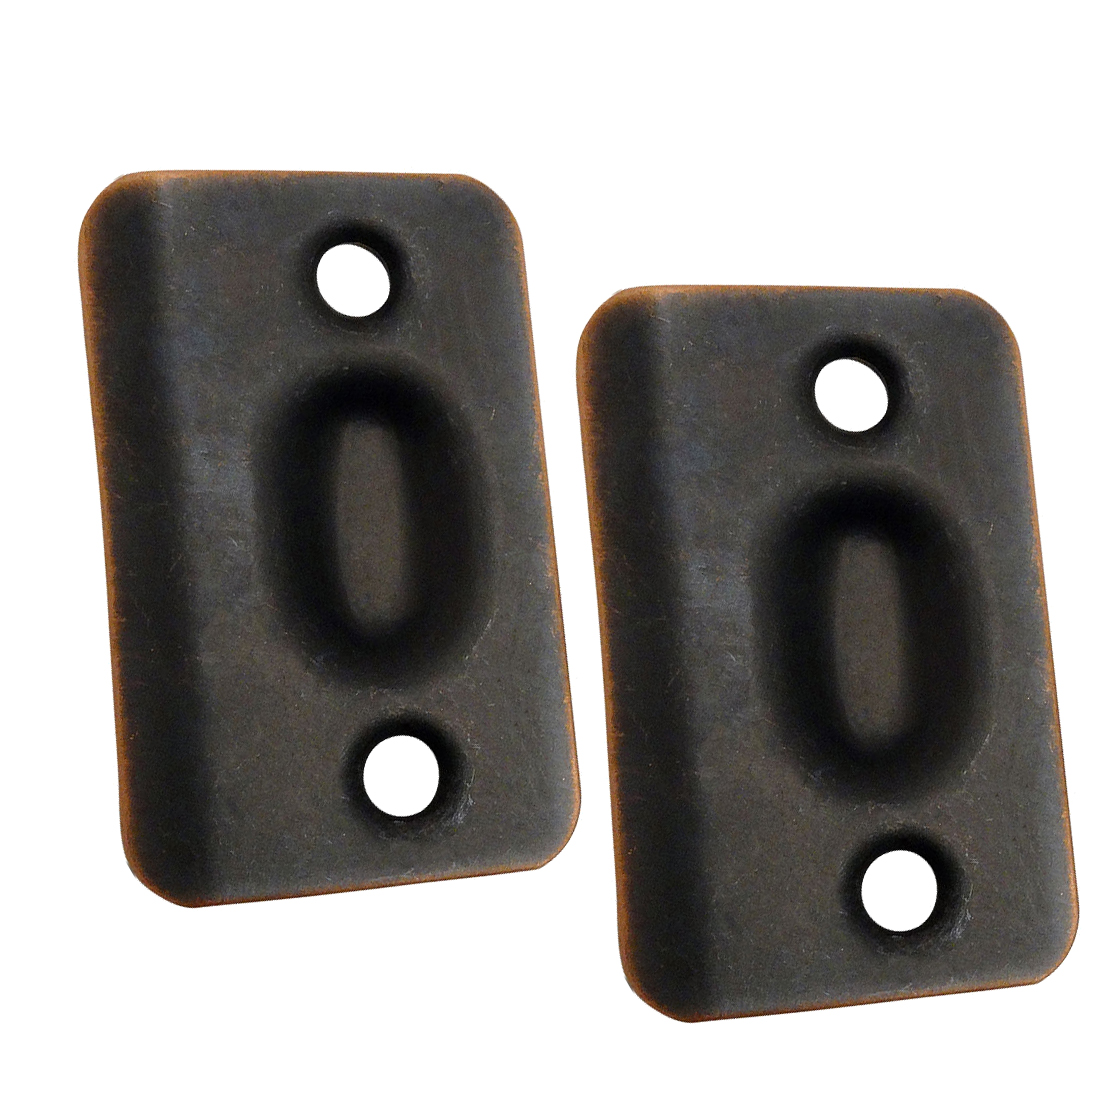 Oil Rubbed Bronze Replacement Ball Catch Strike Plates